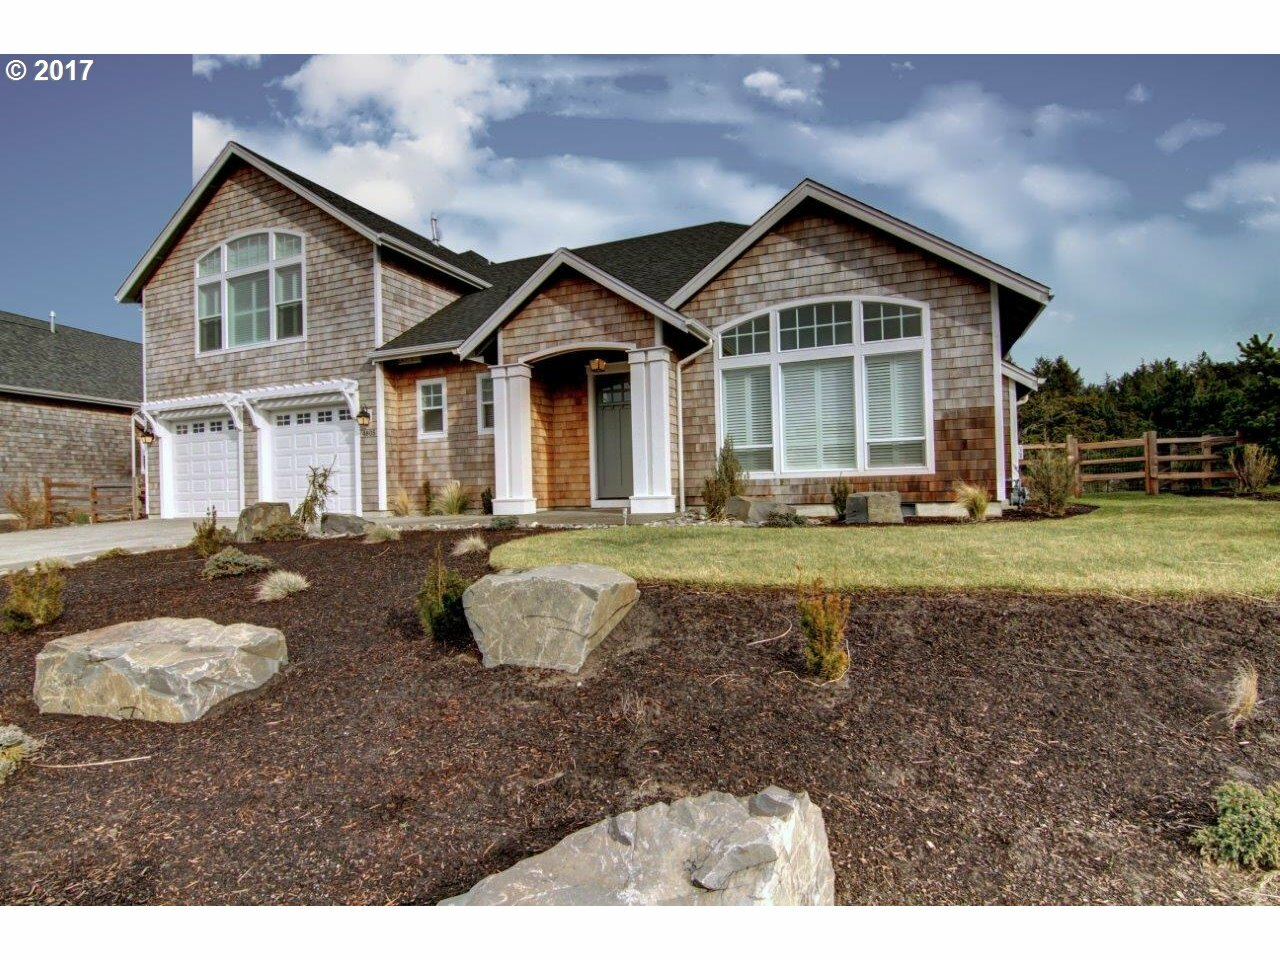 4805 Drummond Dr, Gearhart, OR - USA (photo 2)